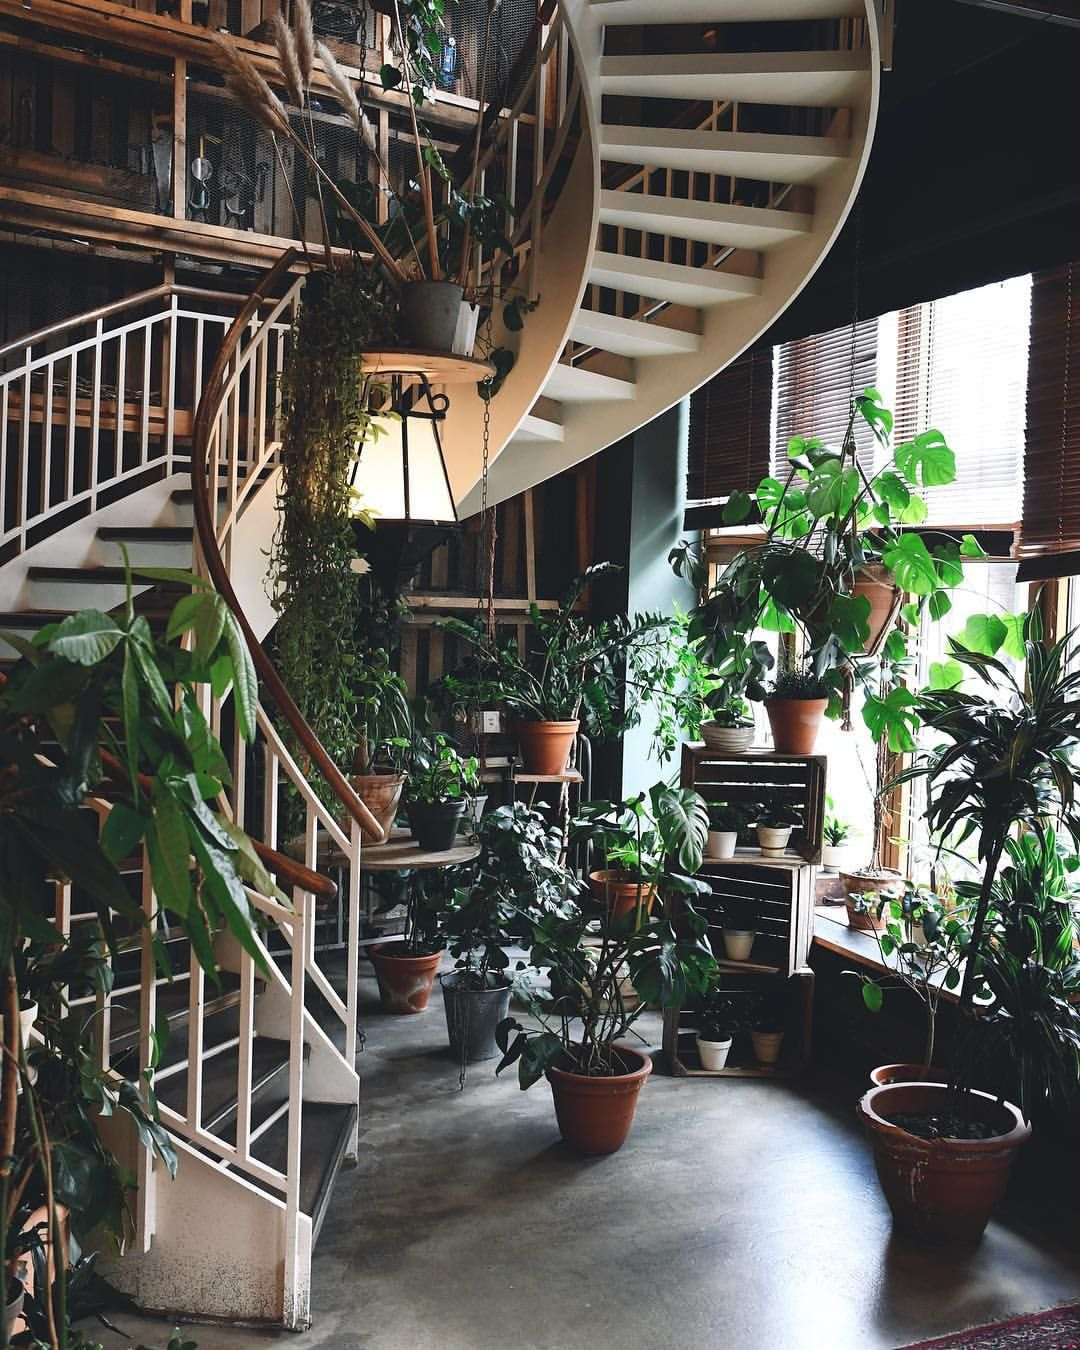 Pin by Kathy Tanaka on DECOR→JUNGLE | Stairways, Home